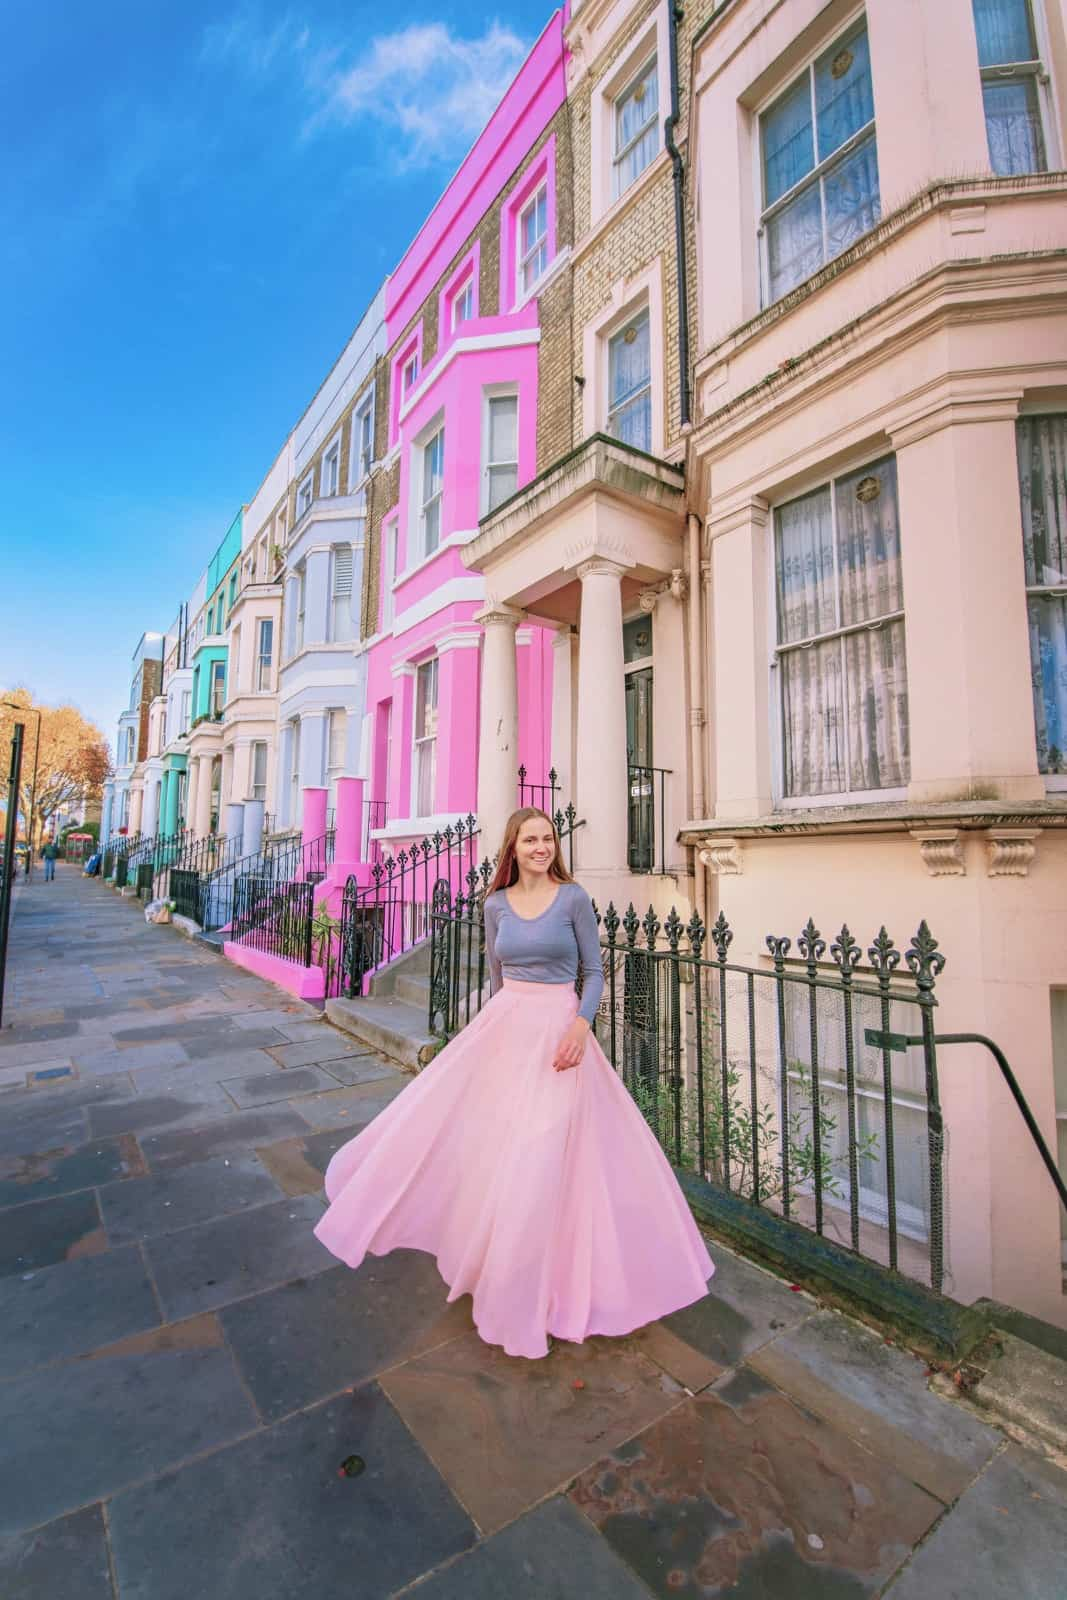 Colorful Notting Hill houses make for some great Instagram spots in London   Instagrammable places in London   london photography locations